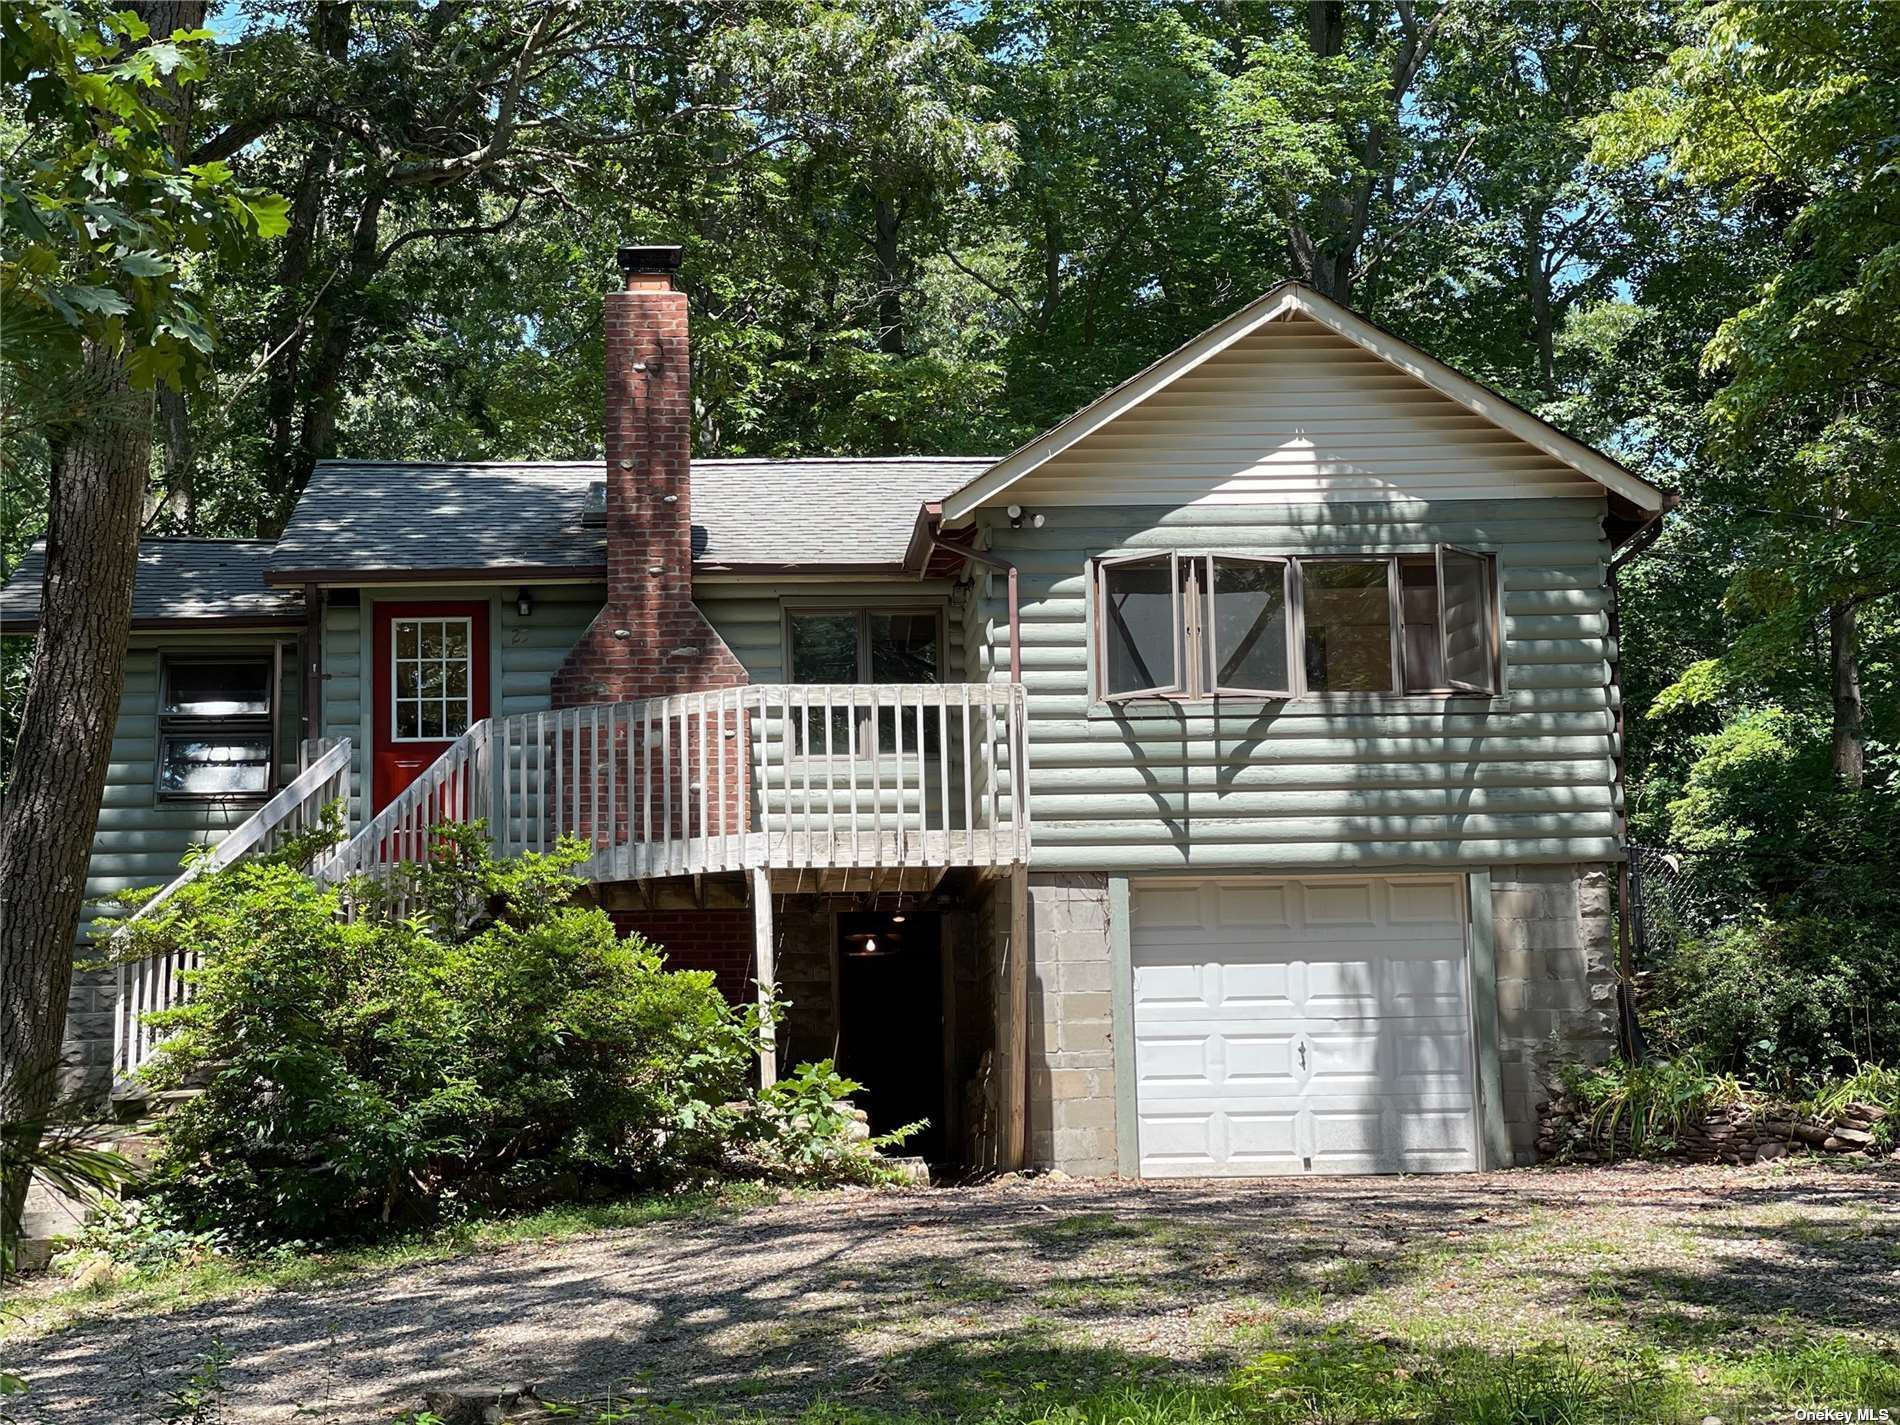 25 Old Cow Path, Miller Place, NY 11764 - MLS#: 3332238